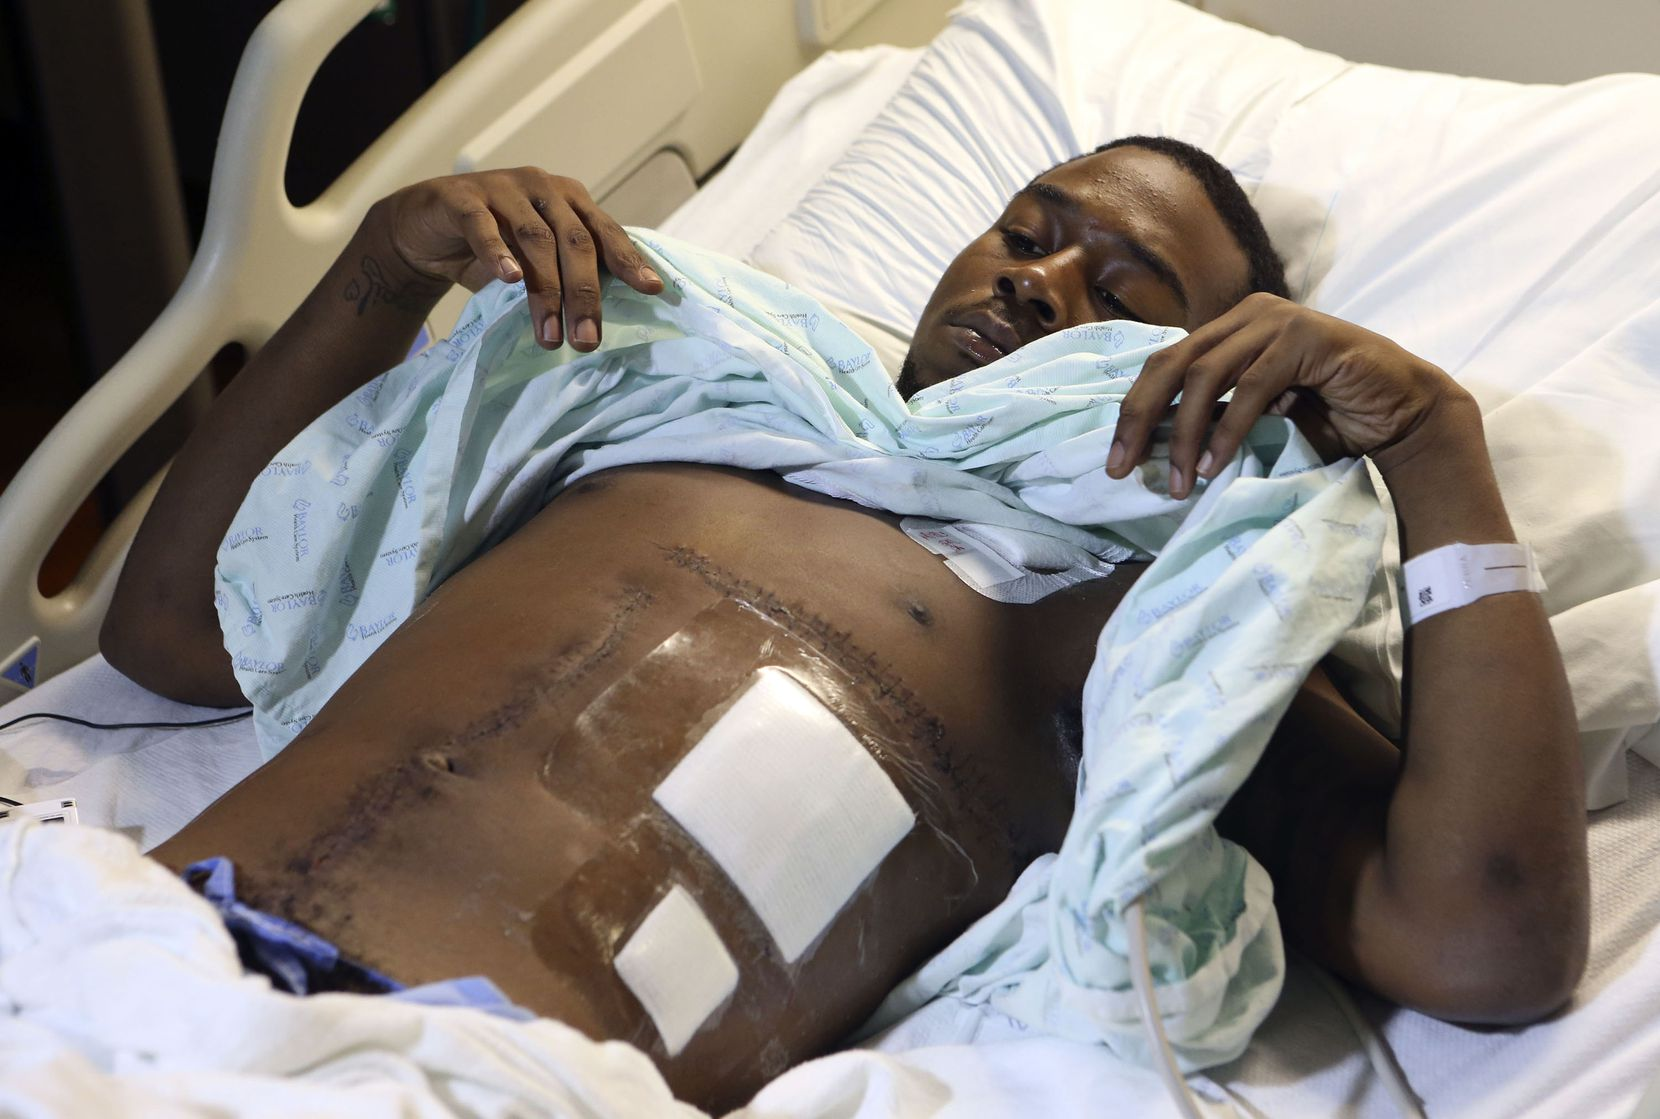 Kelvion Walker, 19,  shows his wounds from the surgery that saved his life after he was shot by Senior Cpl. Amy Wilburn in December 2013. An independent witness said the officer shot Walker even though he had both hands in the air and showed no signs of having a weapon.